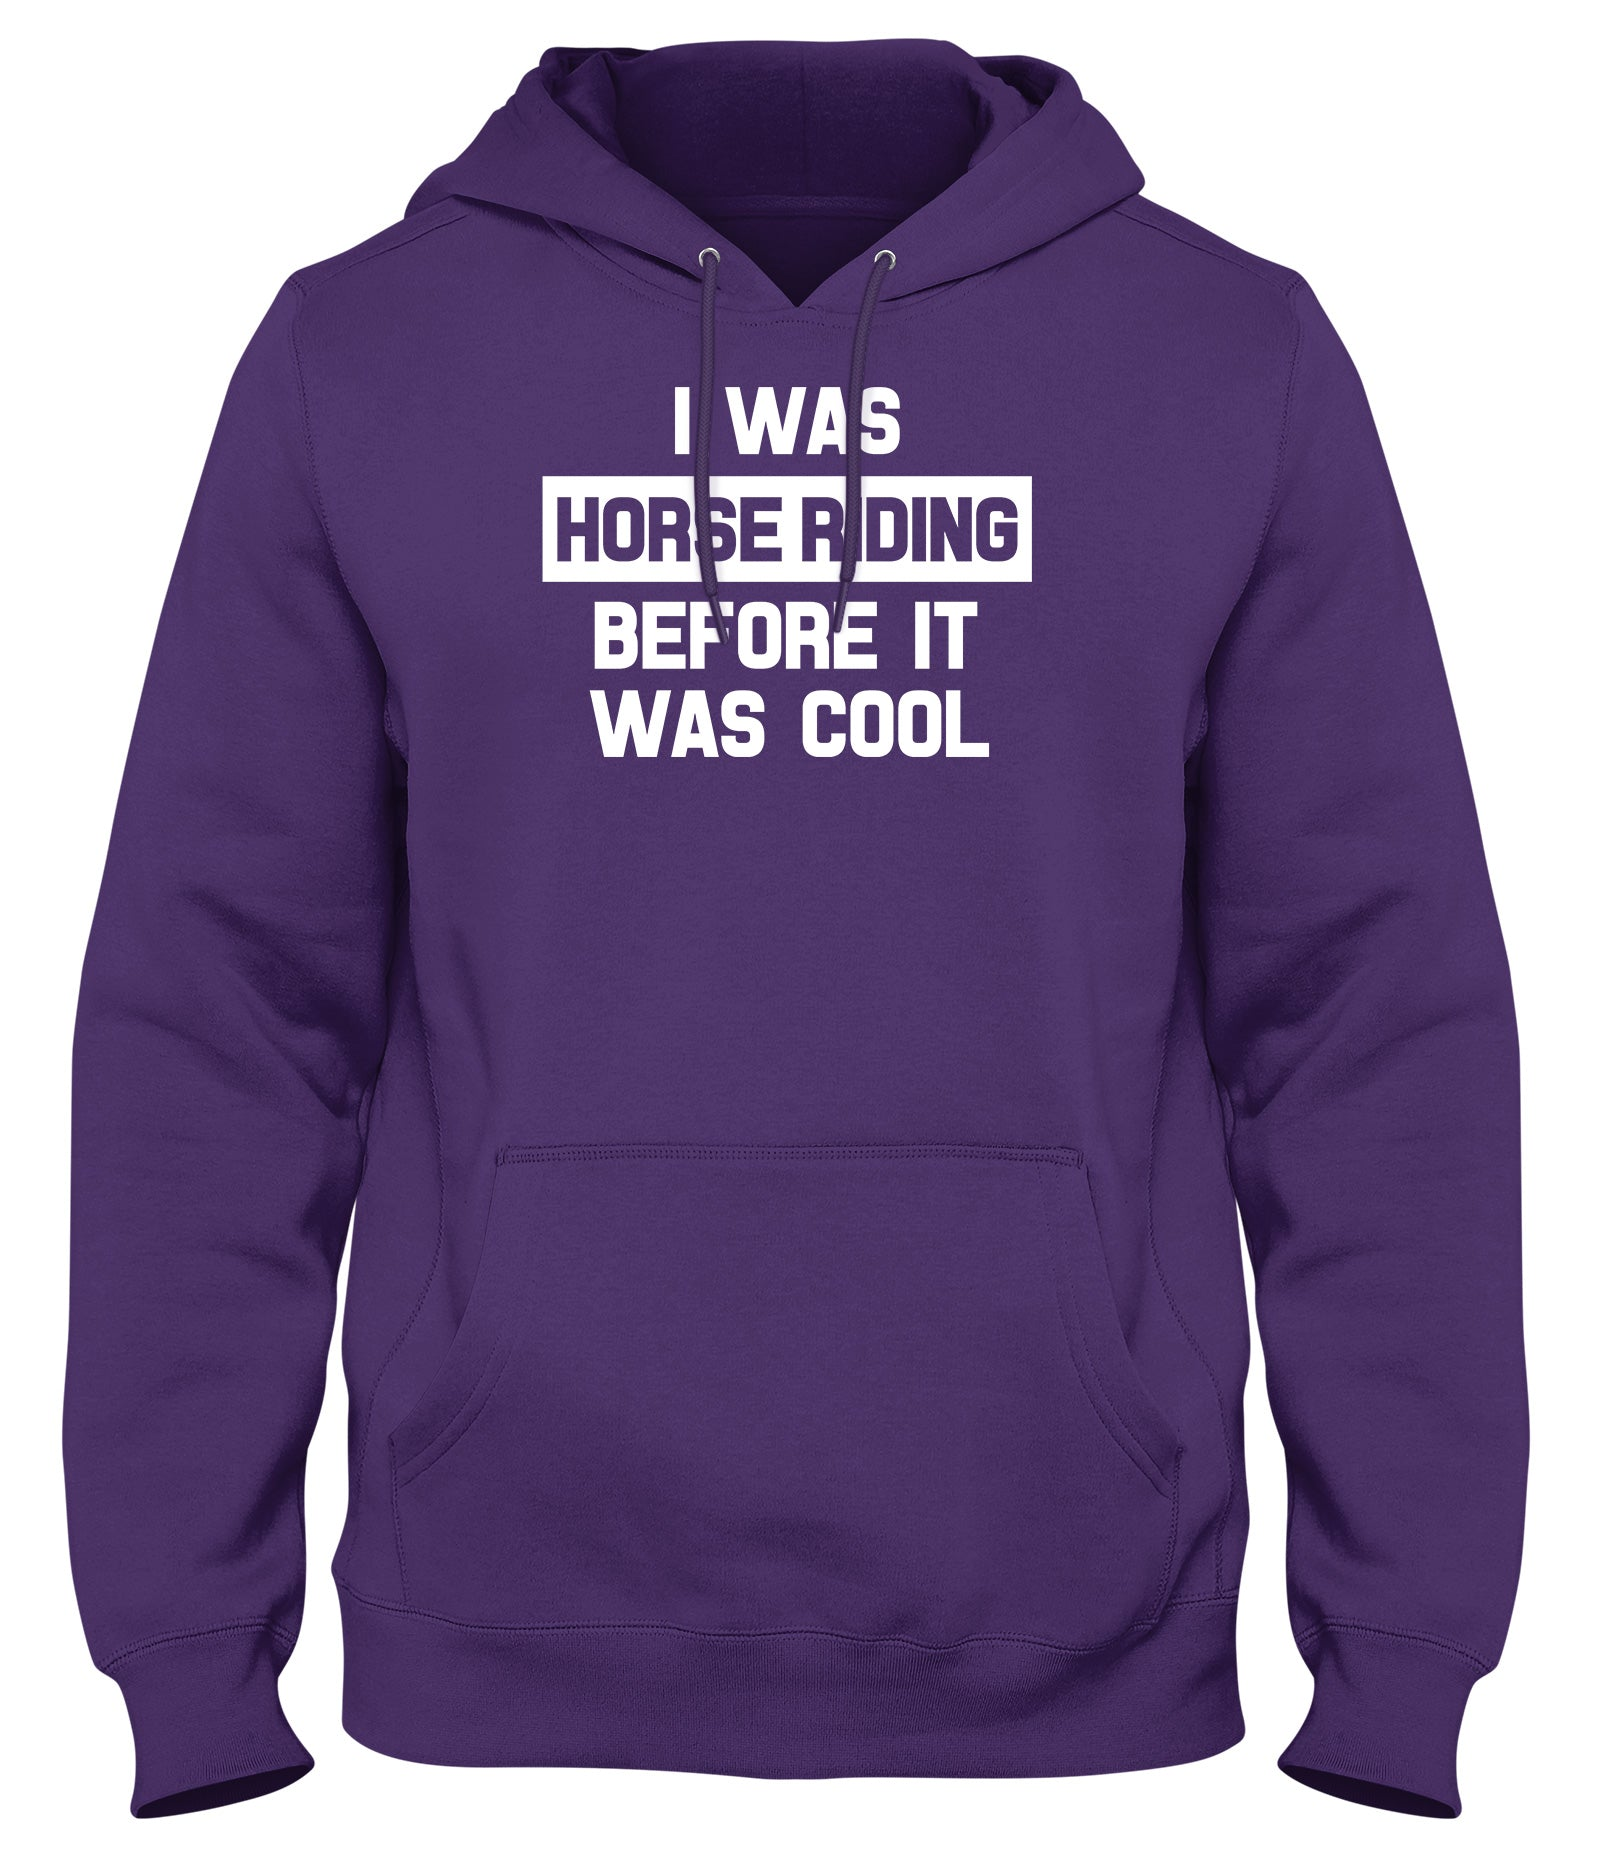 I WAS HORSE RIDING BEFORE IT WAS COOL WOMENS LADIES MENS UNISEX HOODIE